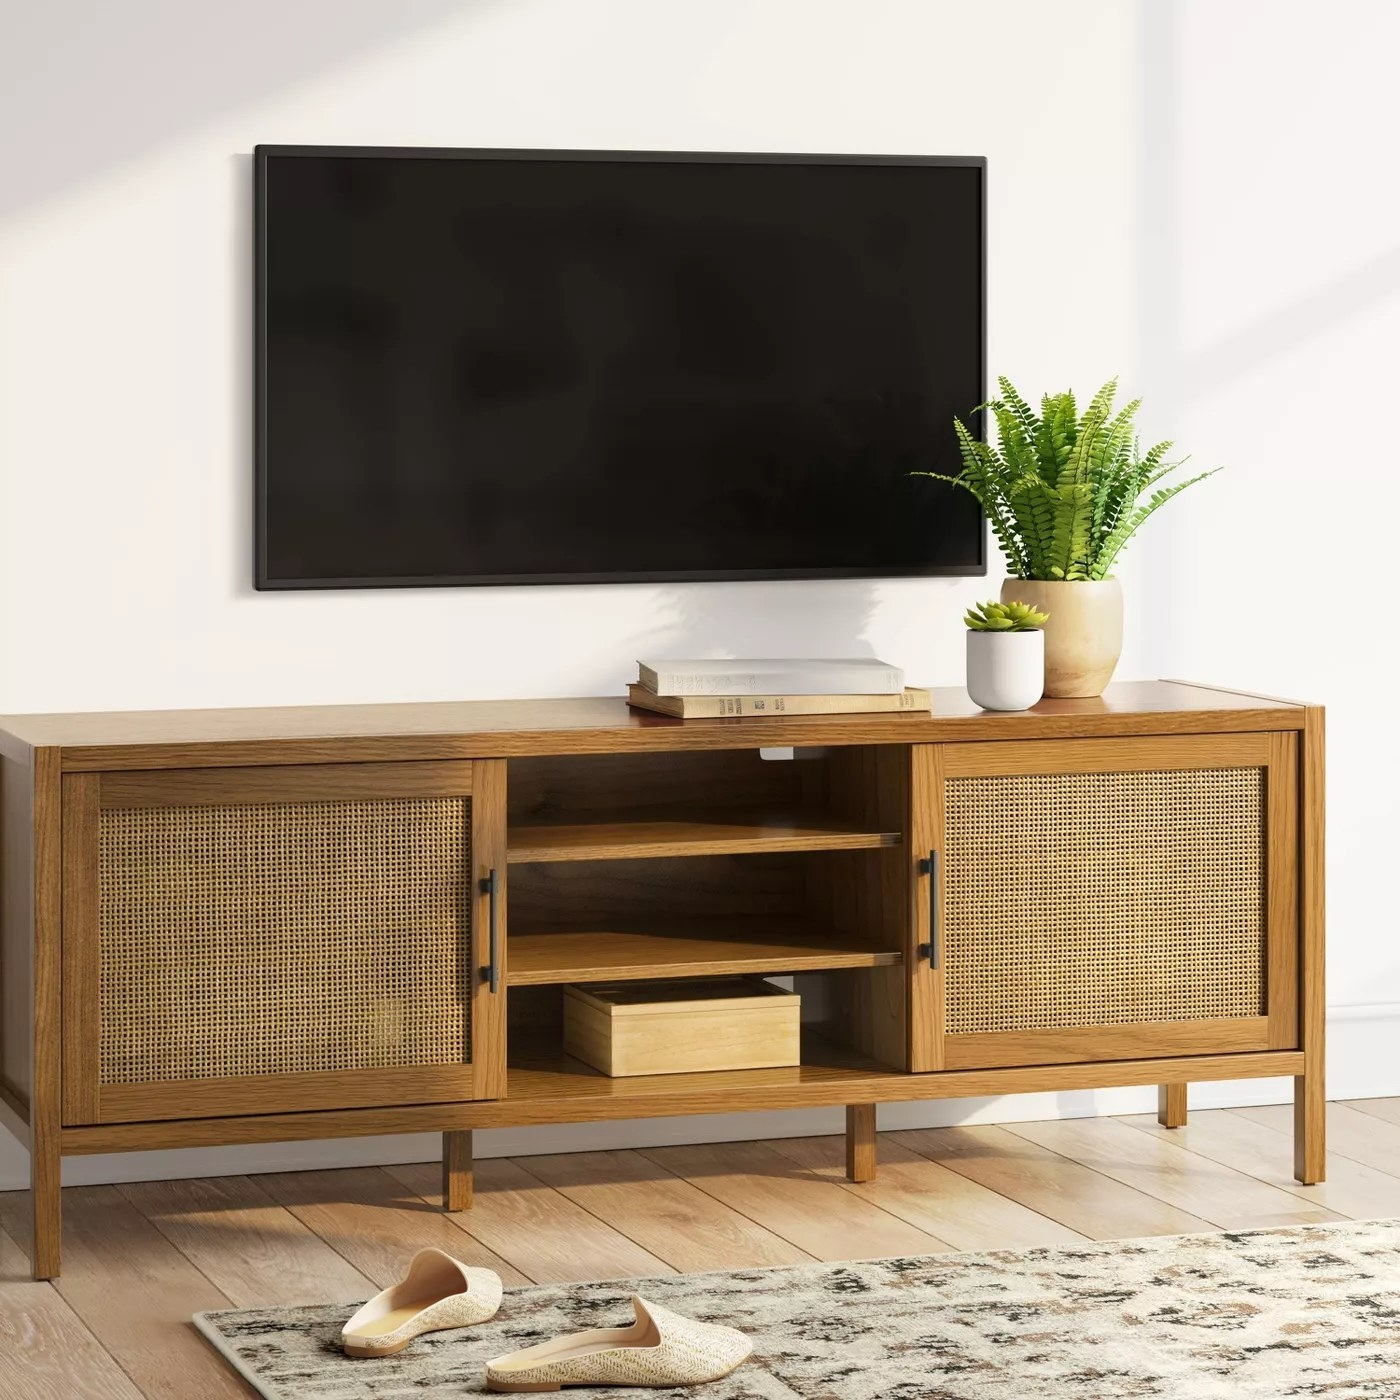 The TV stand with three open shelves in the center and two doors with more storage on either side